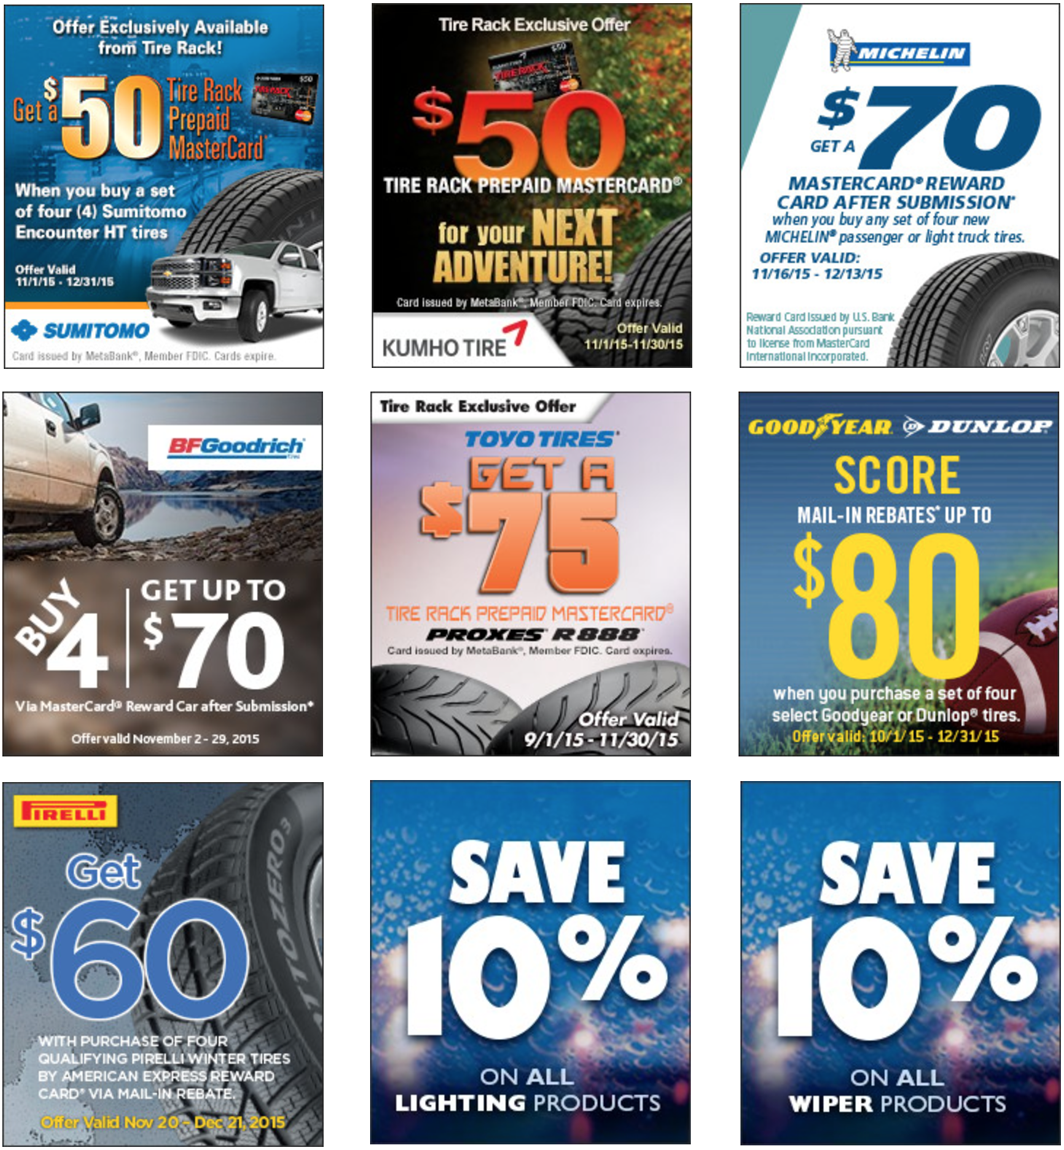 It's Black Friday , and Discount Tire Direct is pulling out all the stops with our tire and rim deals!